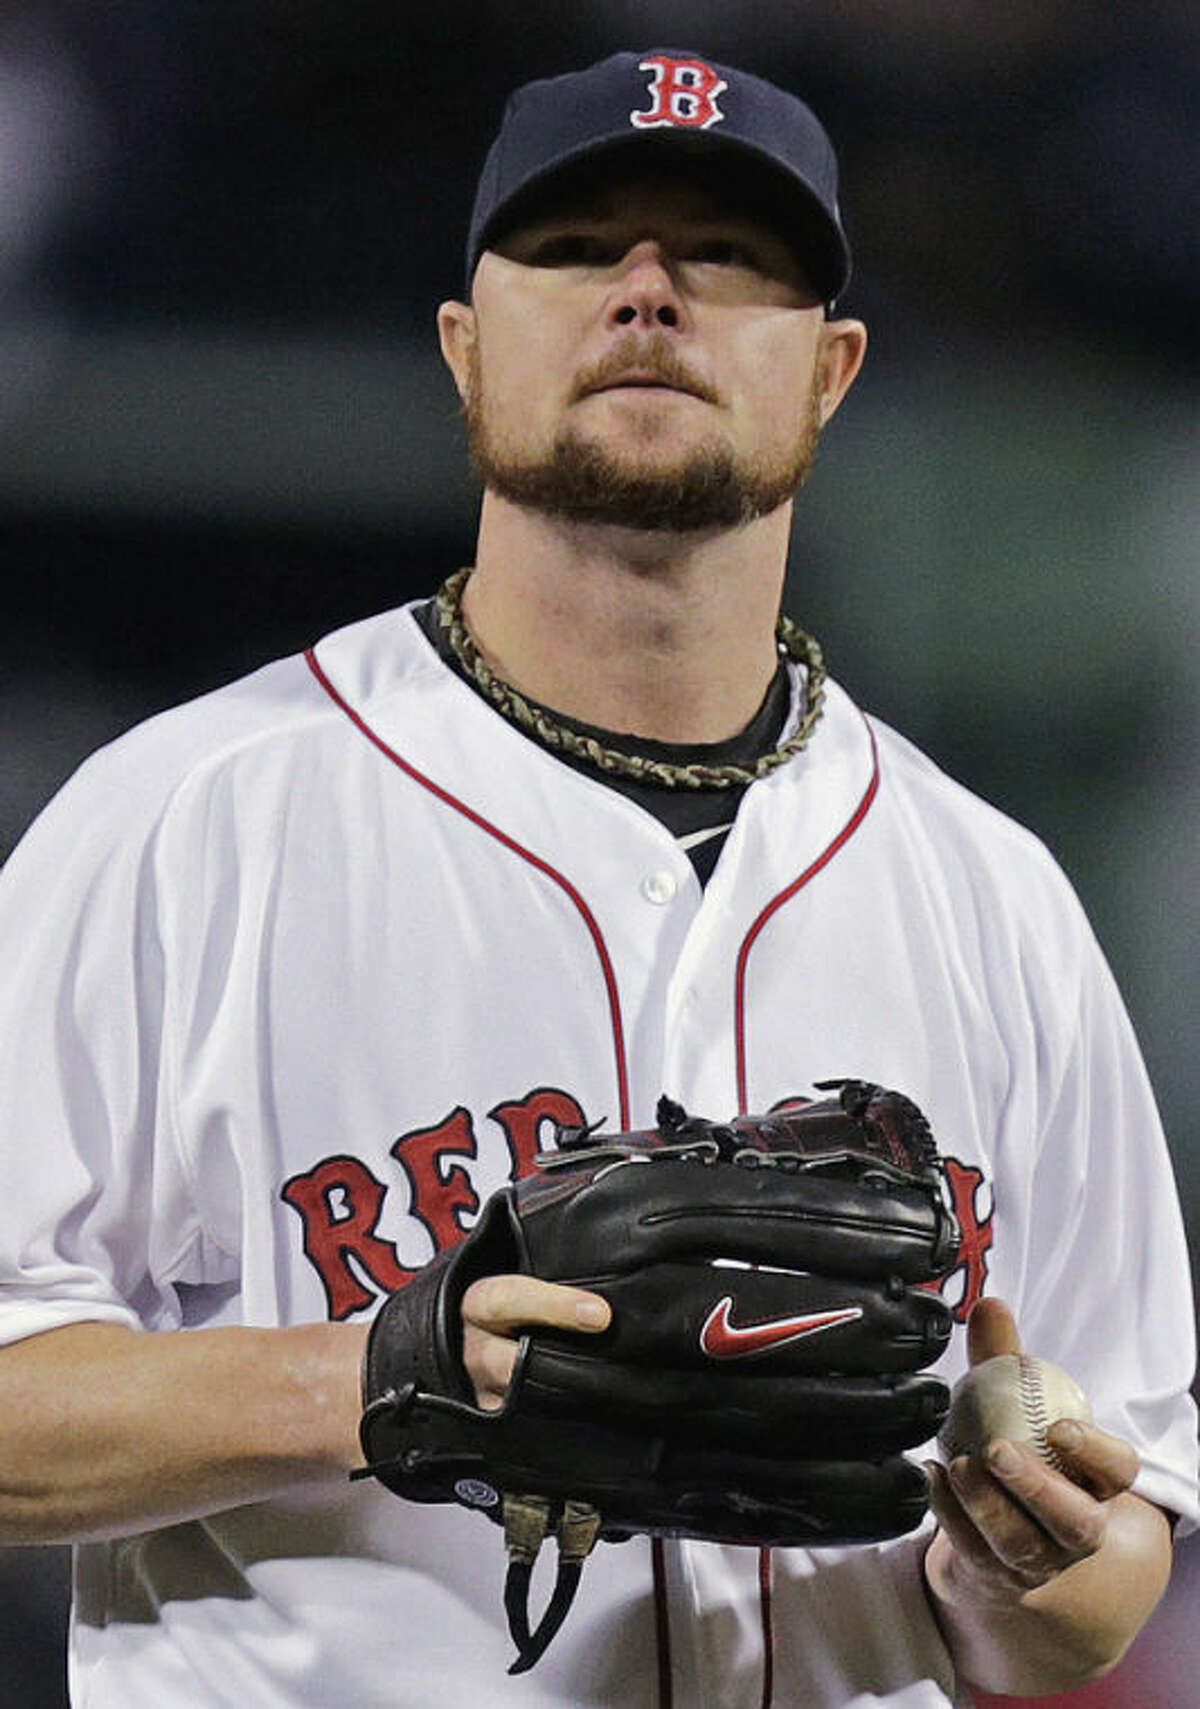 """In this photo taken Wednesday, Oct. 23, 2013, Boston Red Sox starting pitcher Jon Lester waits to throw during the first inning of Game 1 of baseball's World Series in Boston. Tyler Melling, a Cardinals minor leaguer has suggested Lester may have used a foreign substance to aid his pitches during his win over St. Louis in the World Series opener. Melling wrote Wednesday night on Twitter: """"Jon Lester using a little Vaseline inside the glove tonight?"""" with a screen shot appearing to show discoloration on Lester's black glove. (AP Photo/Charles Krupa)"""